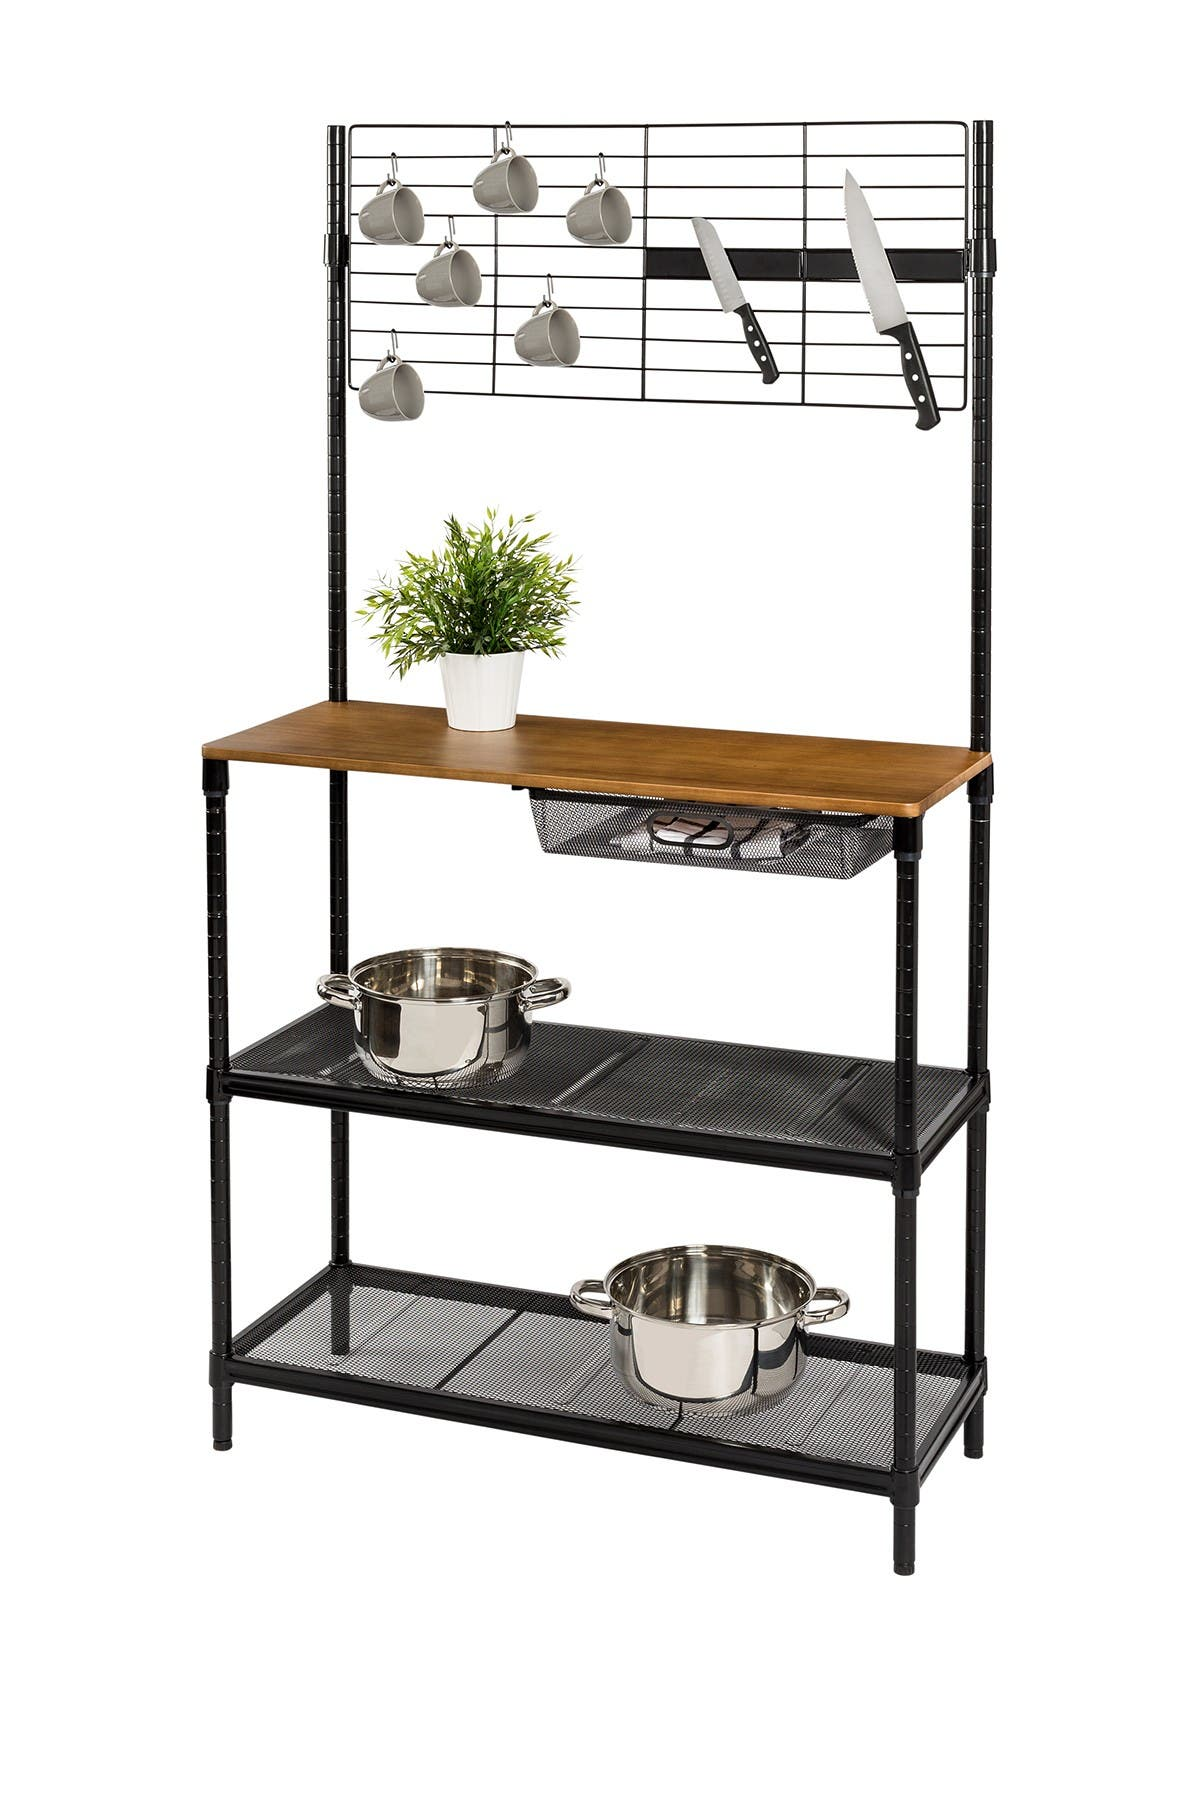 Image of Honey-Can-Do Black/Wood Kitchen Bakers Rack